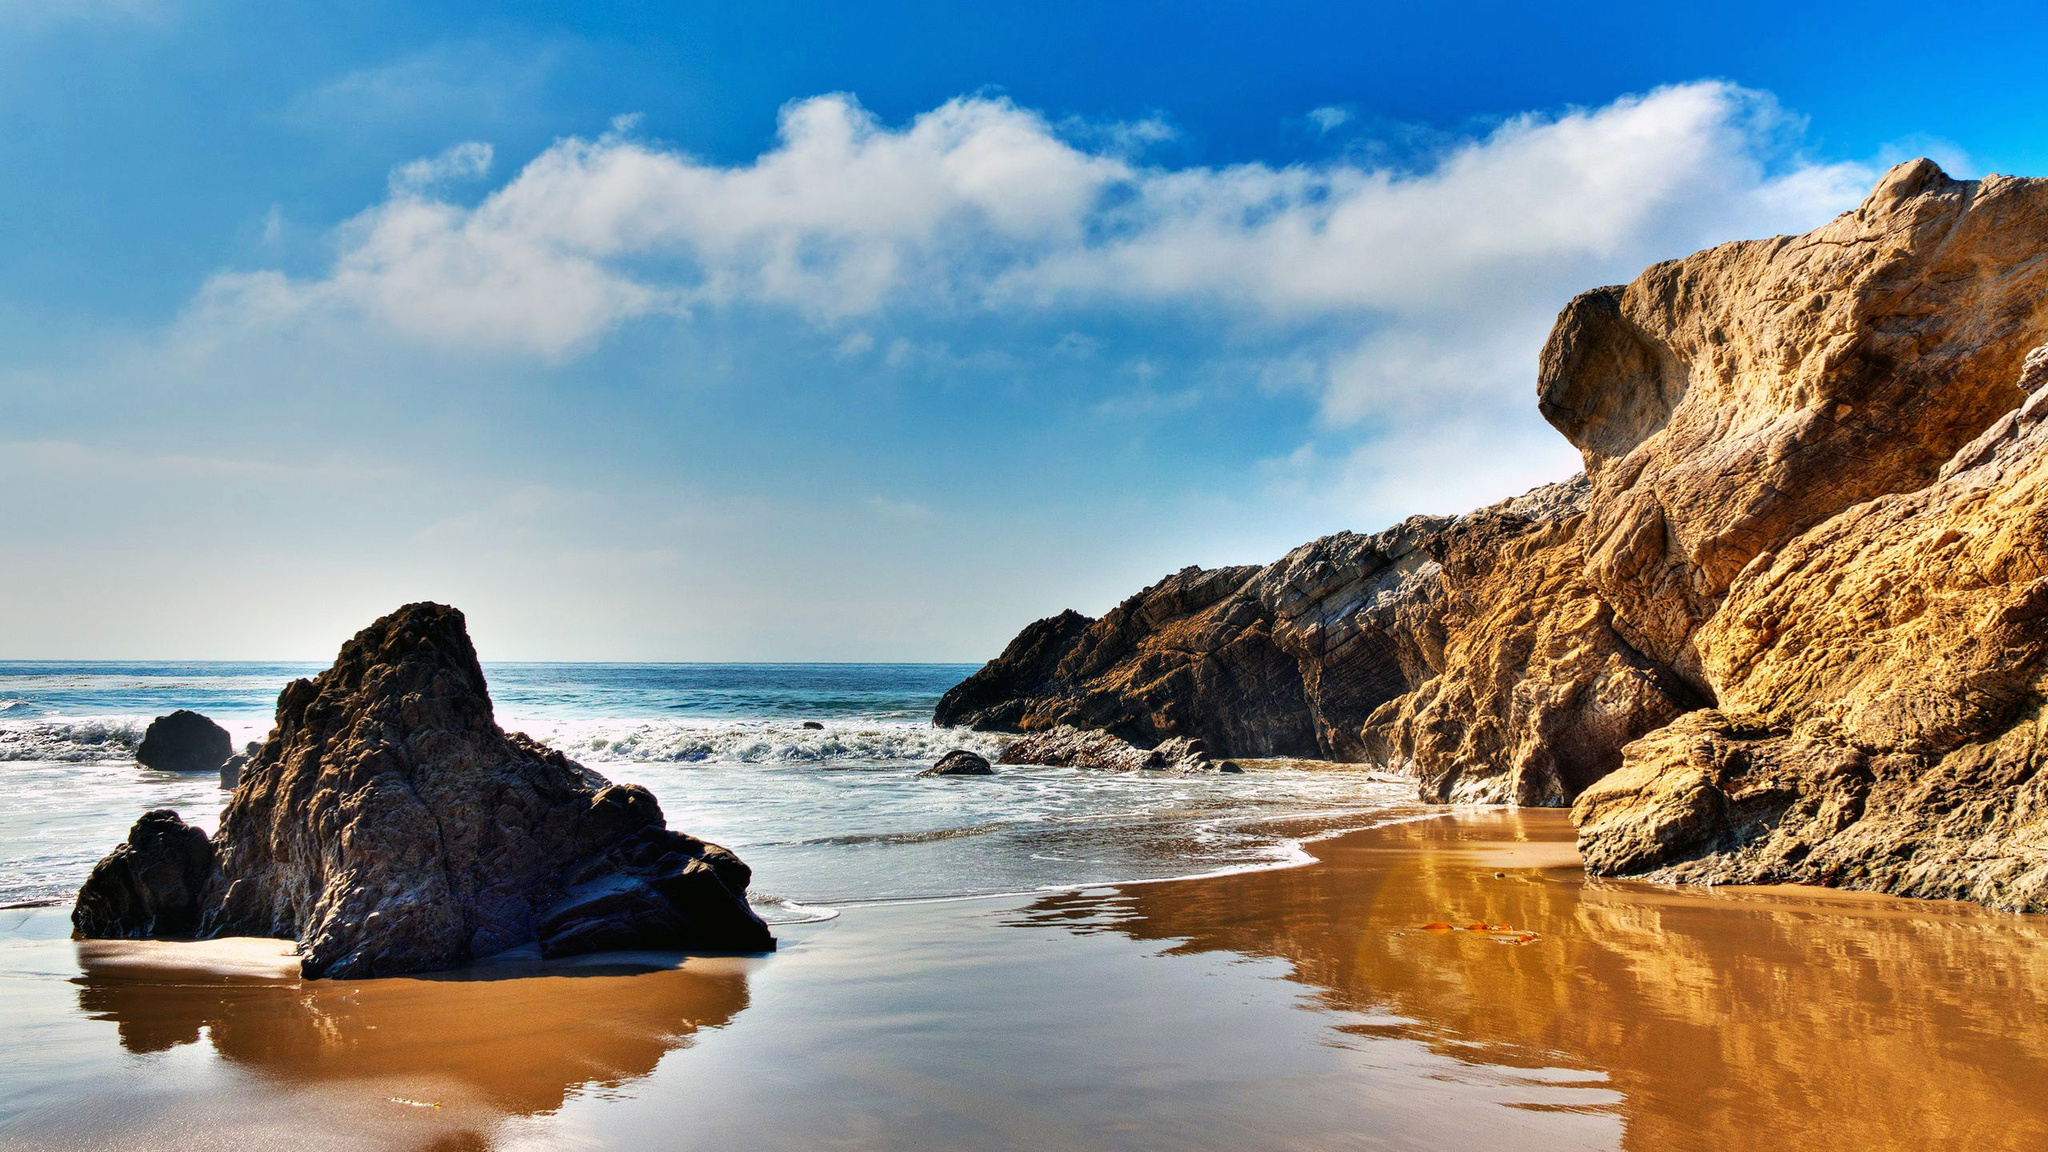 The wallpaper of beach at the Pacific Ocean in Malibu California 2048x1152